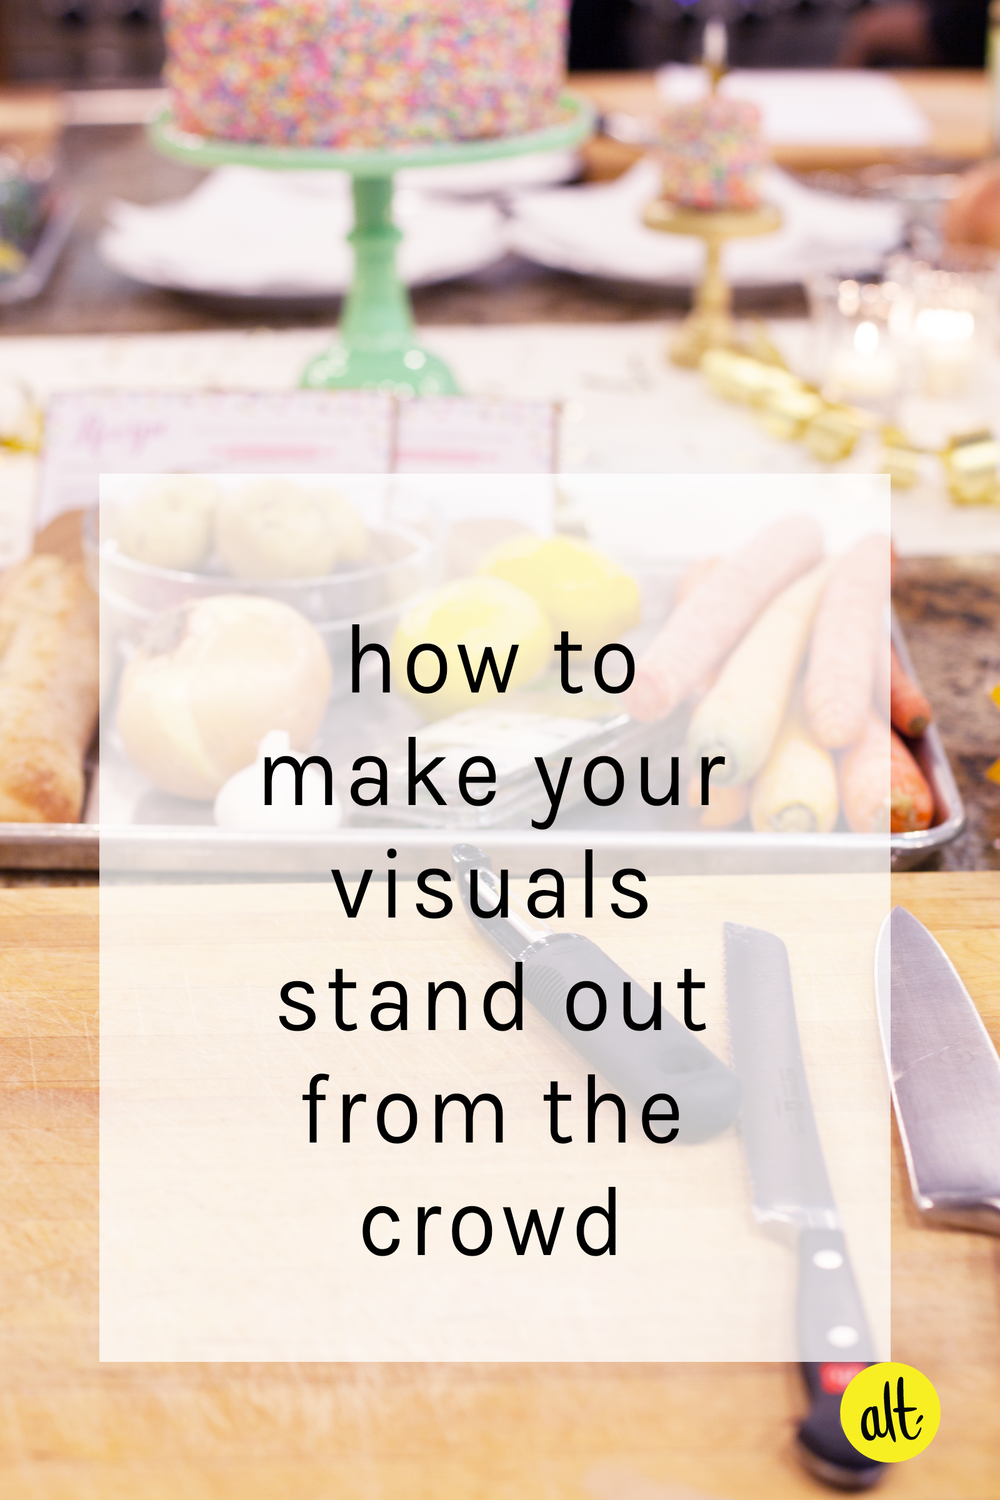 Four ways to make your visual branding stand out from the crowd, along with tips for where to find those crave worthy props and get imagery if you're not a photographer.